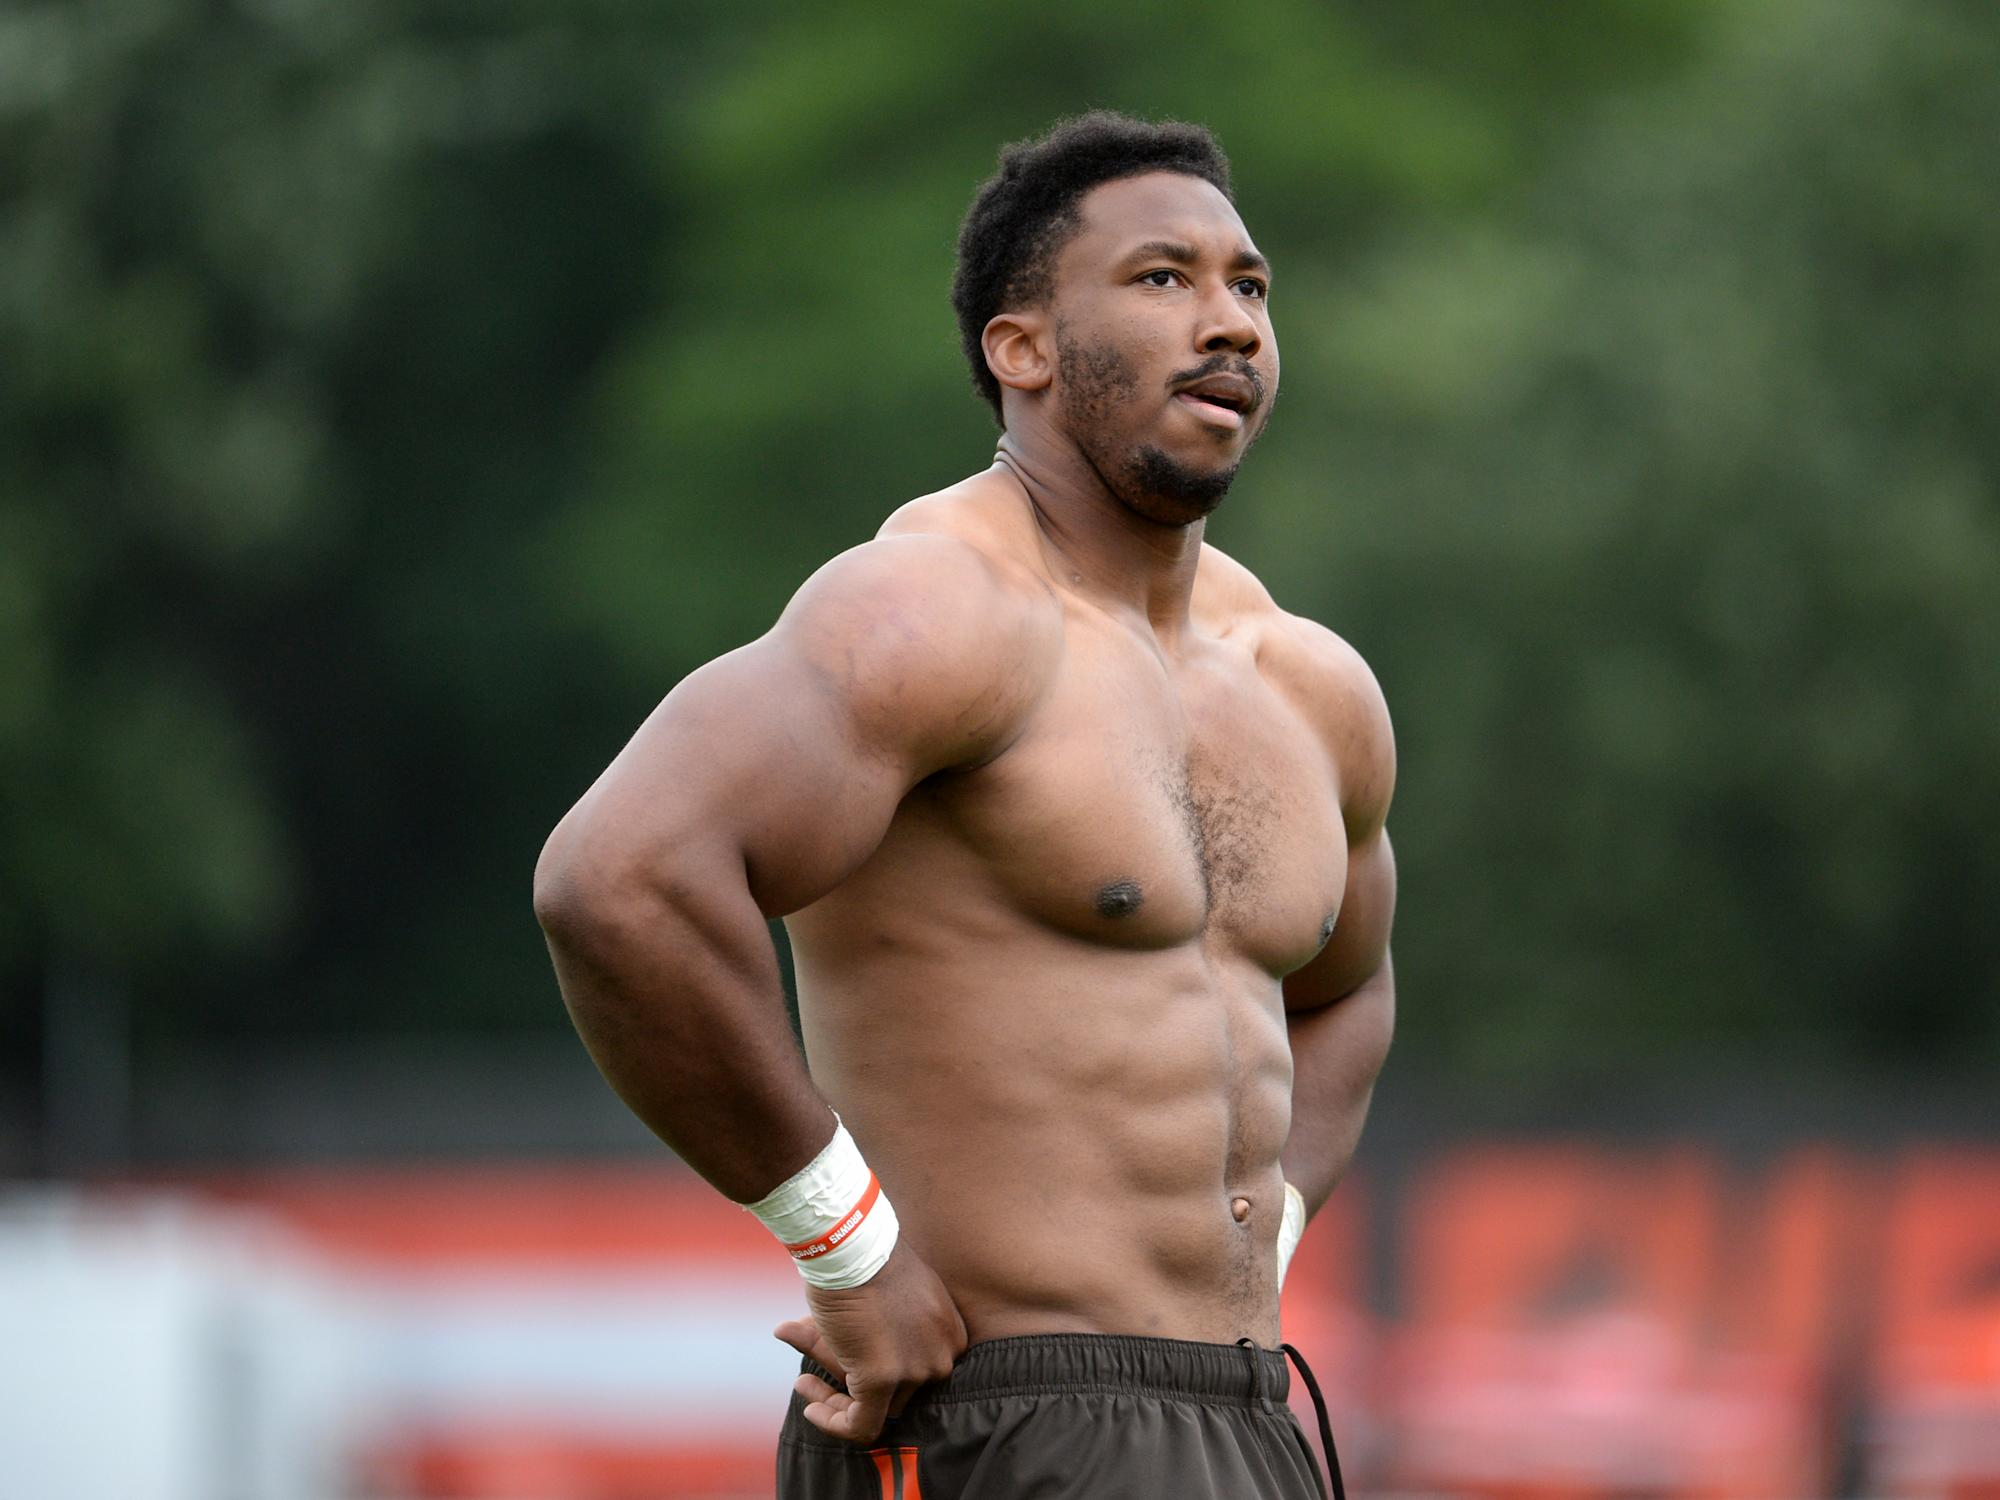 Browns' Garrett says fan asked for picture, punched him